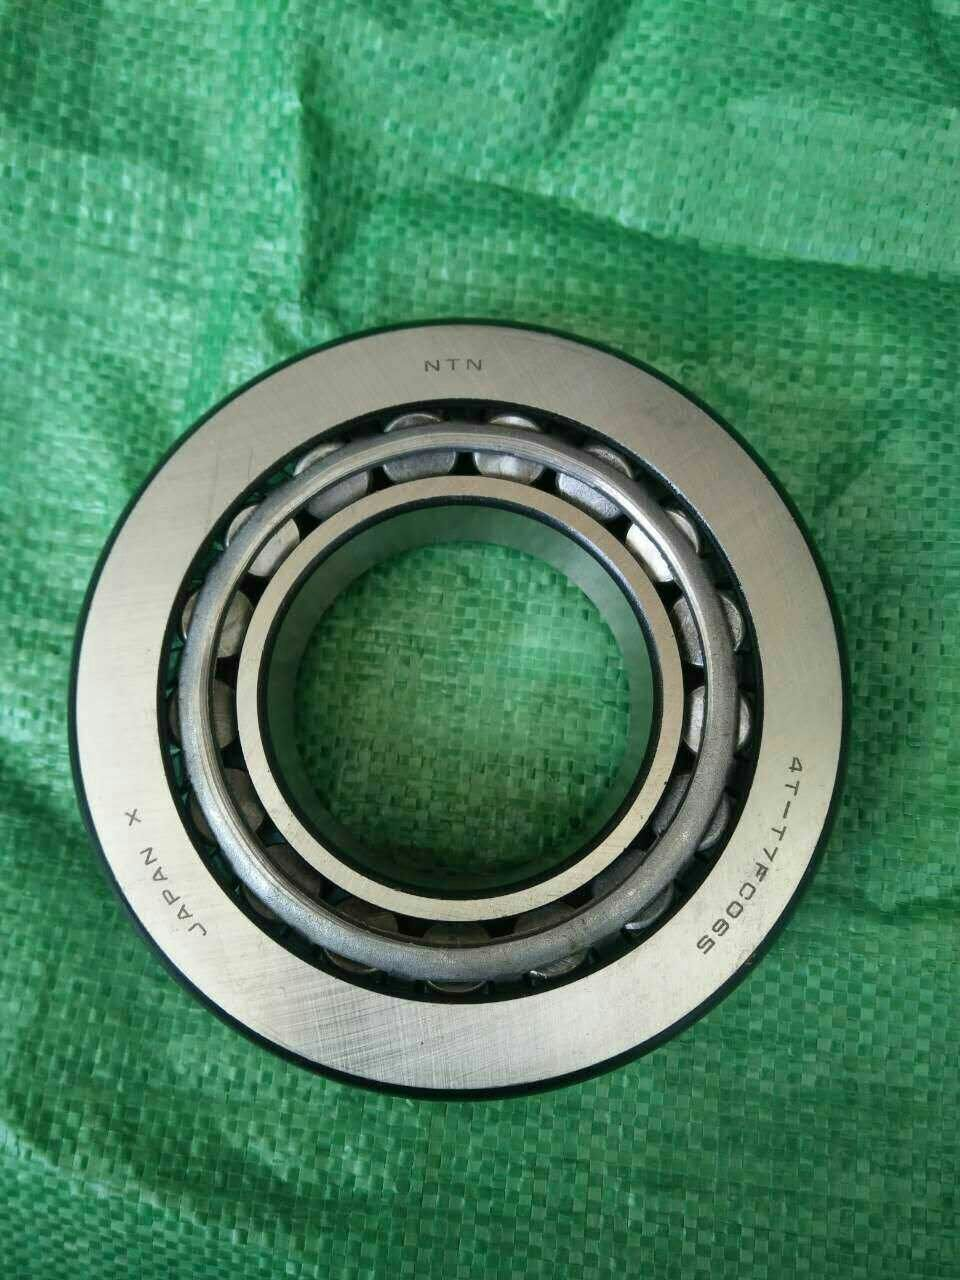 Supply of English tapered roller bearing 4t-3984/4t-3920 specification 66.675112.71230.162.